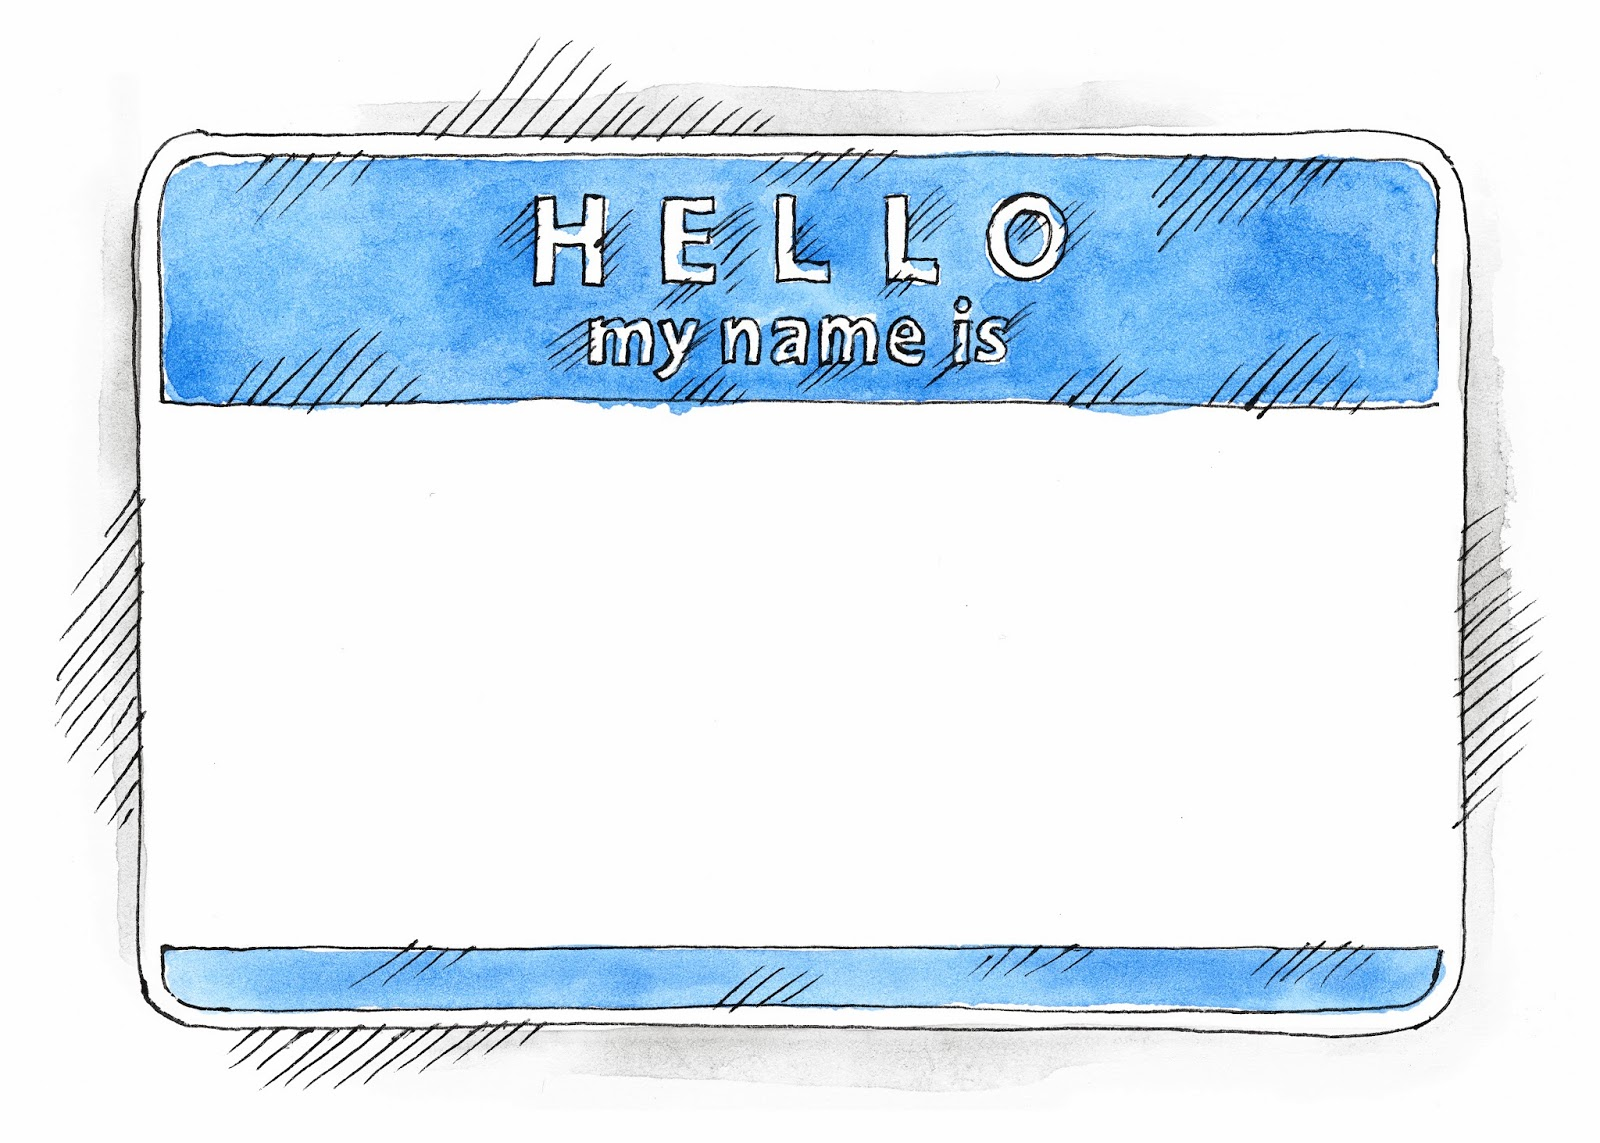 Download FREE EPS and PSD Watercolor Empty Blank Name Tag HELLO My Name Is with shadow isolated on white background. This vector illustration clip-art element for design saved in 10 eps